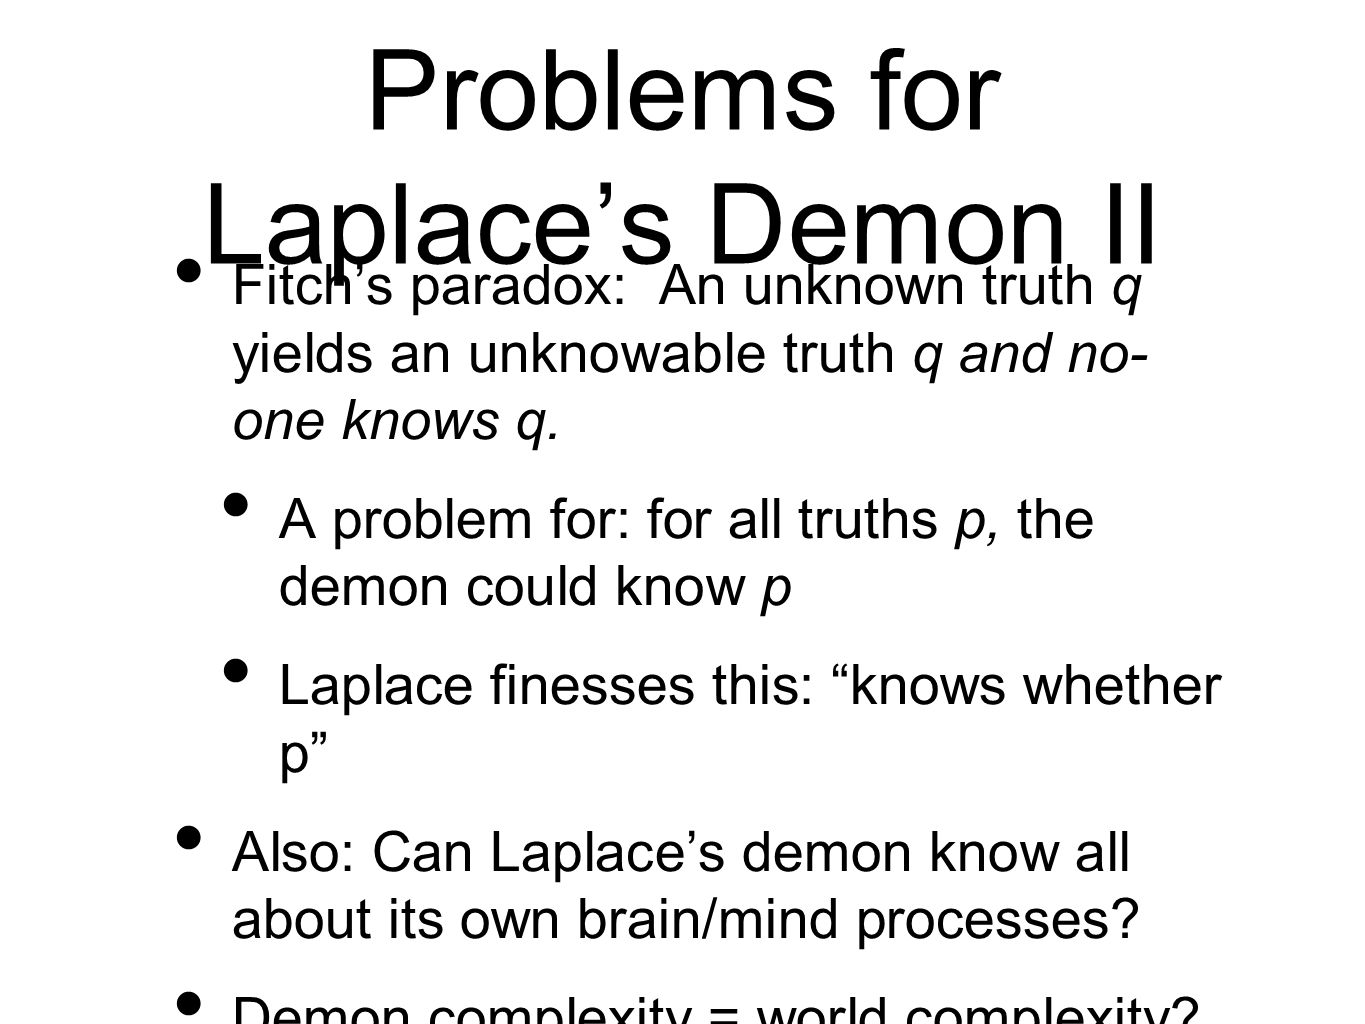 Problems for Laplace's Demon II